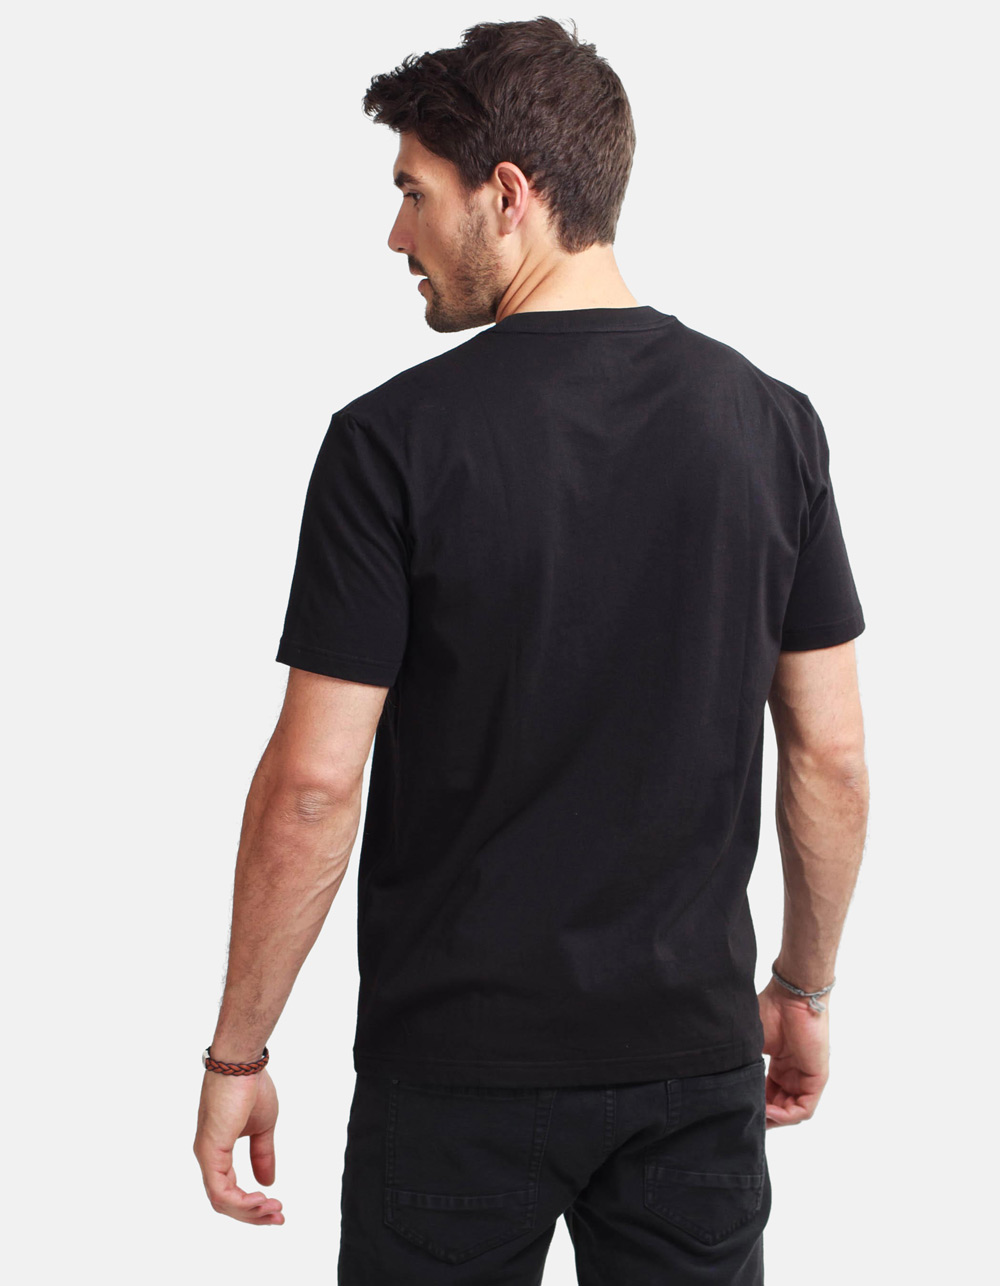 Black shirt MACSON - Backside